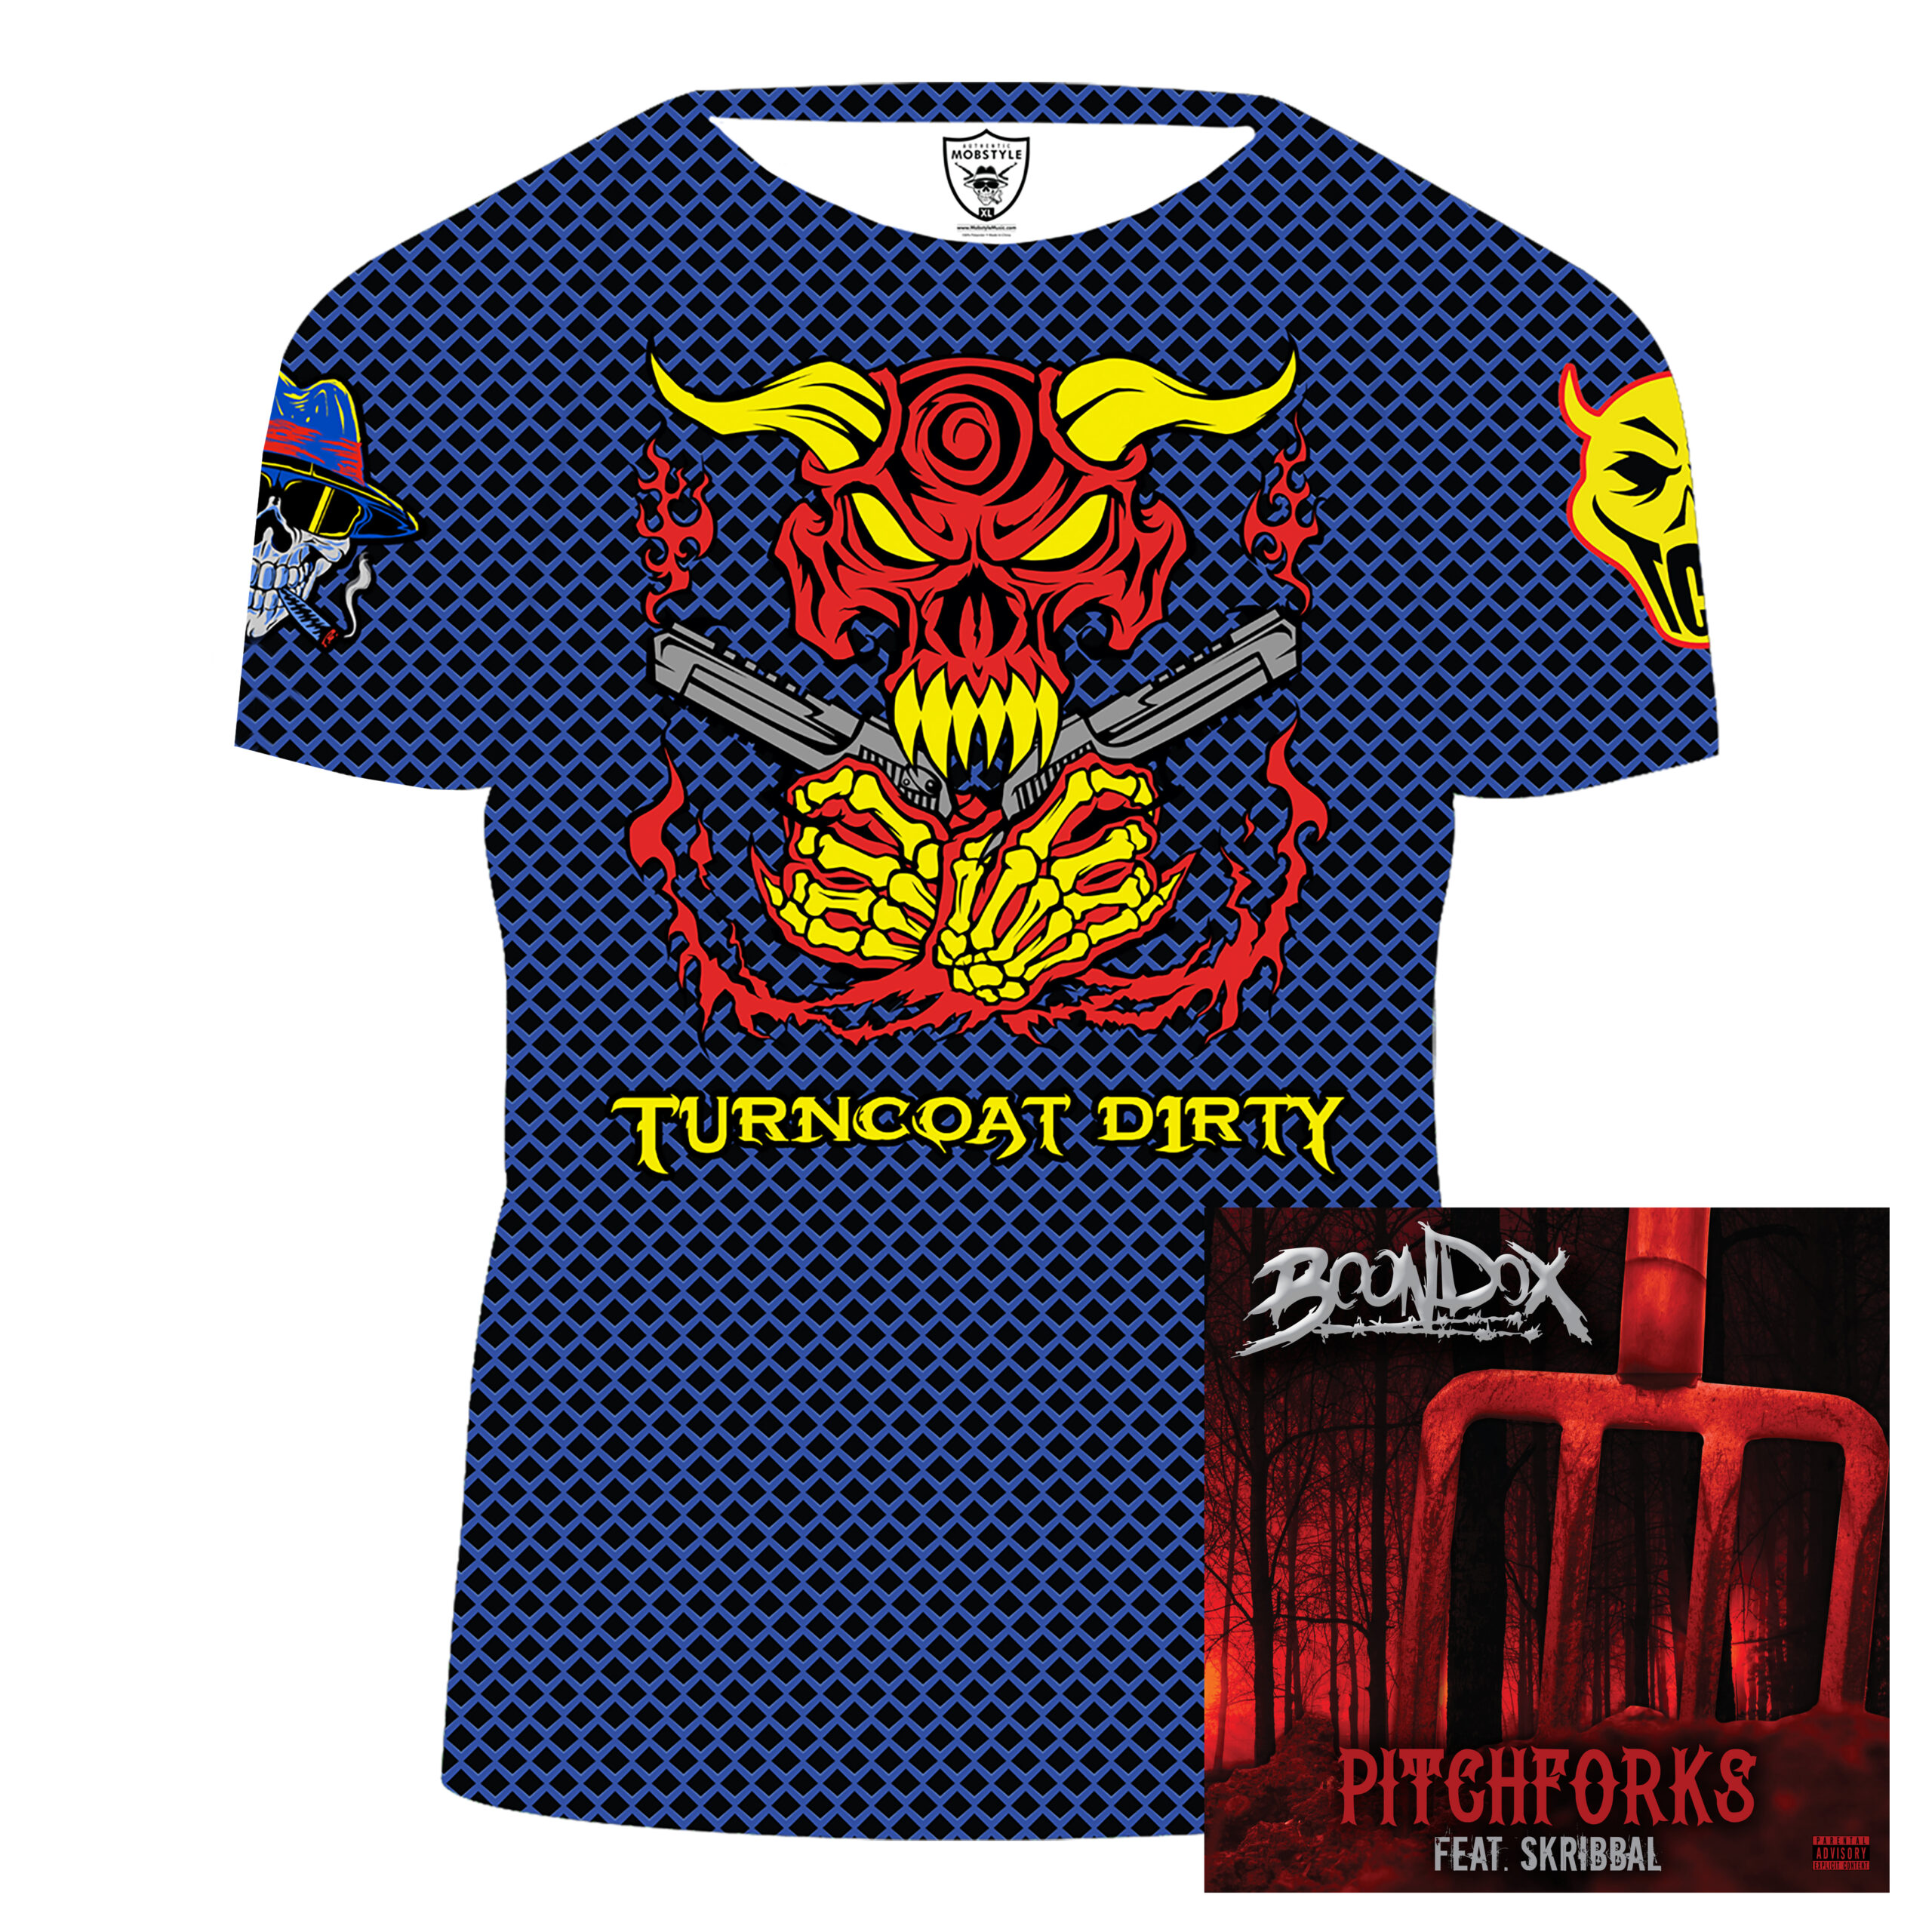 """Turncoat Dirty """"Super-Dirt"""" Sublimated T-shirt! Includes Limited AUTOGRAPHED Boondox """"PITCHFORKS"""" CD!"""